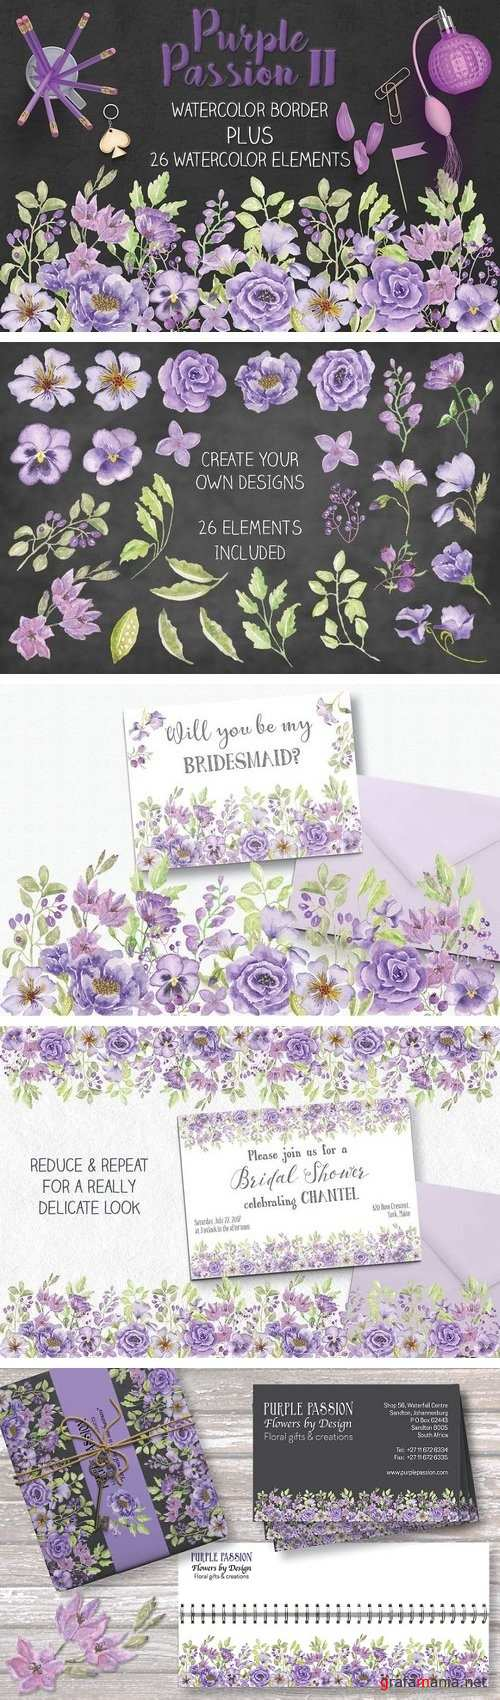 Purple watercolor border + elements - 1522515